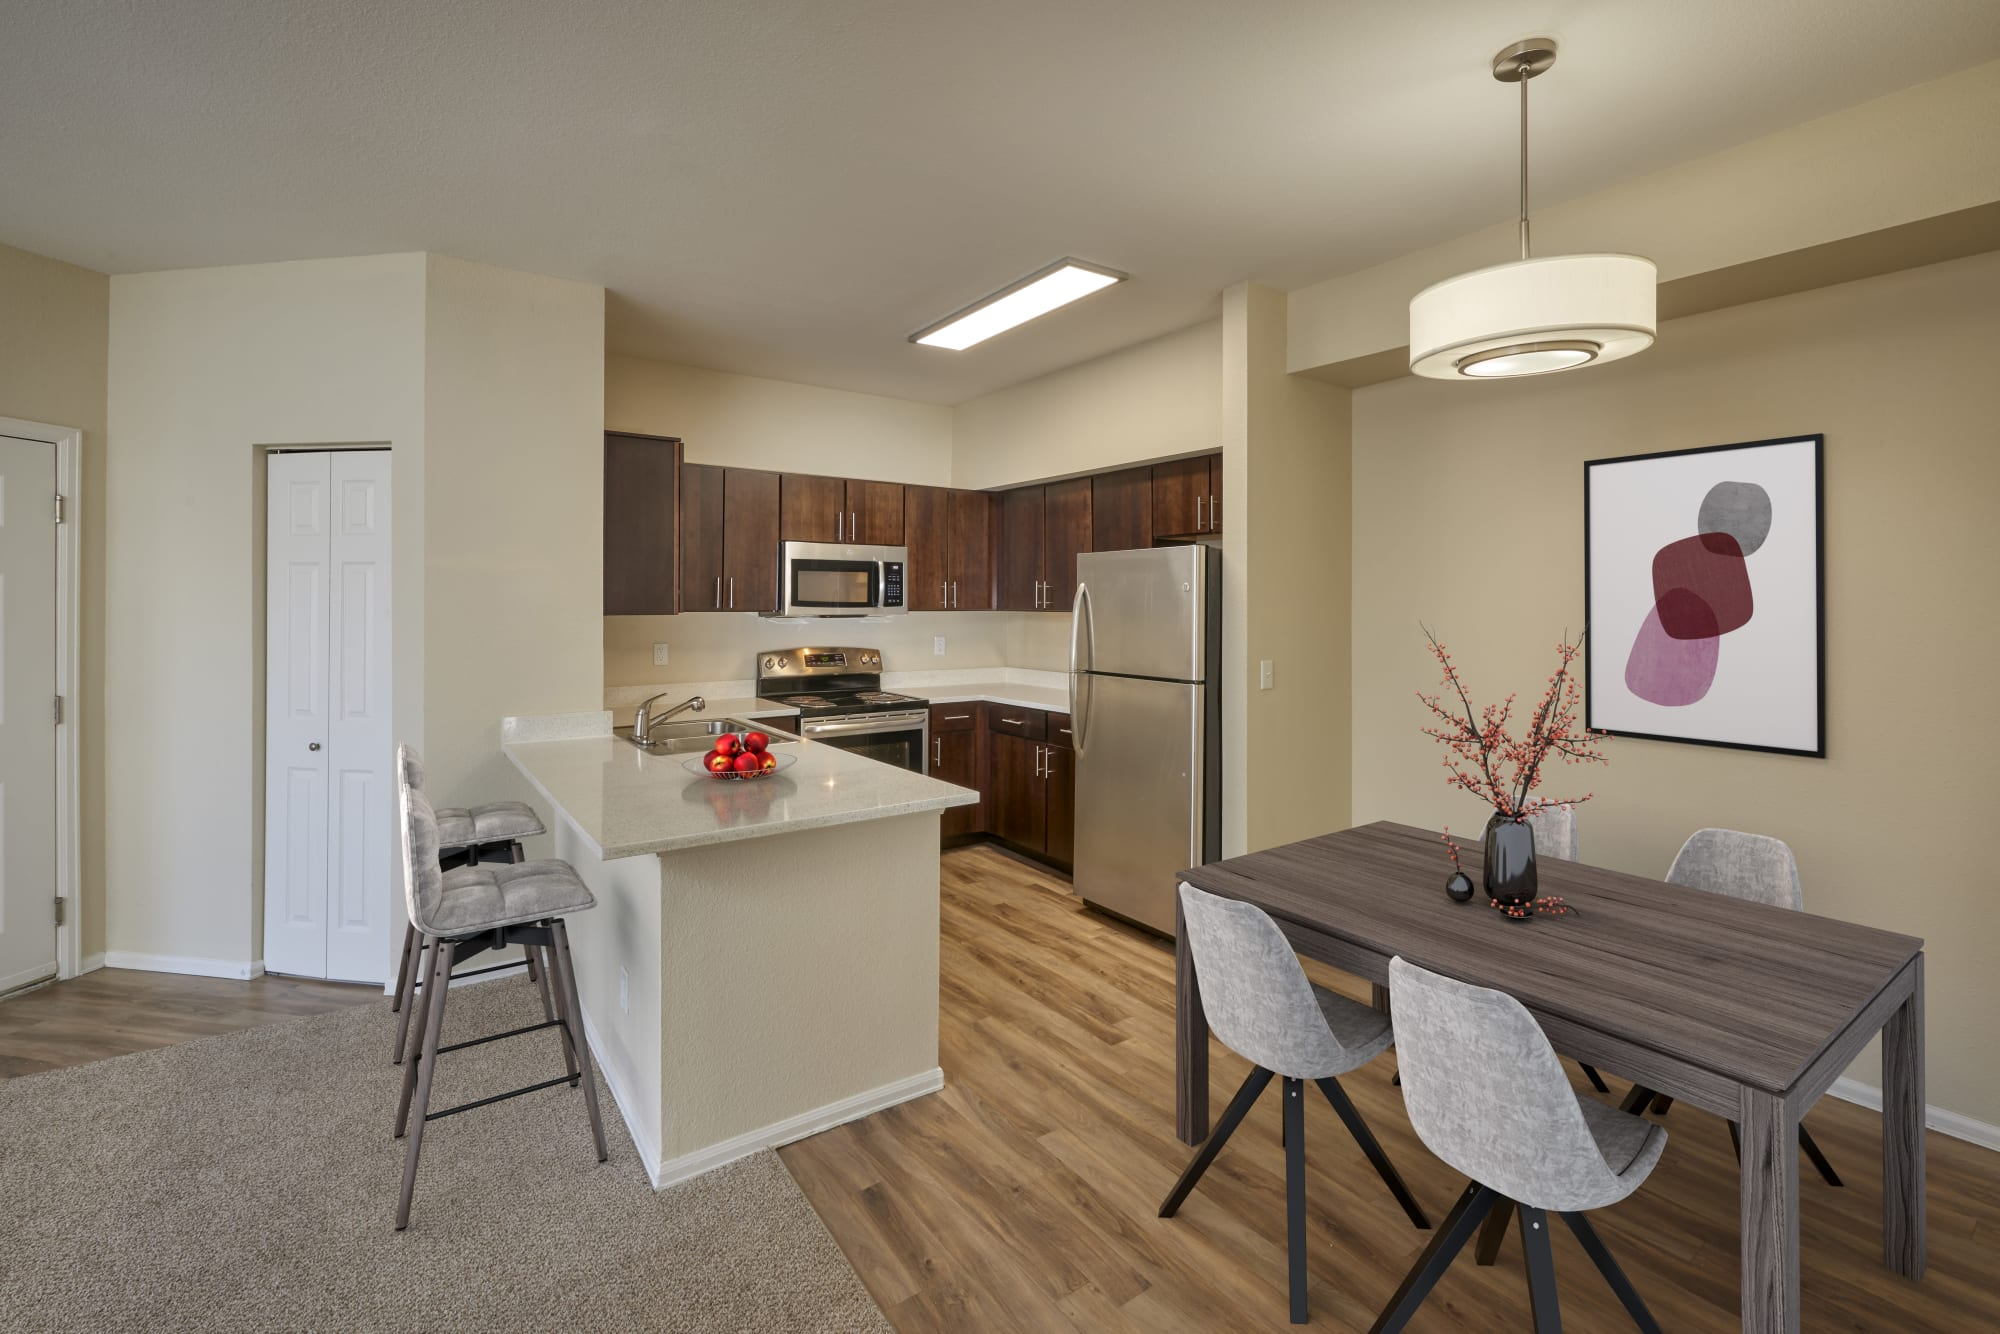 A renovated kitchen with brown cabinets and stainless steel appliances at The Crossings at Bear Creek Apartments in Lakewood, Colorado